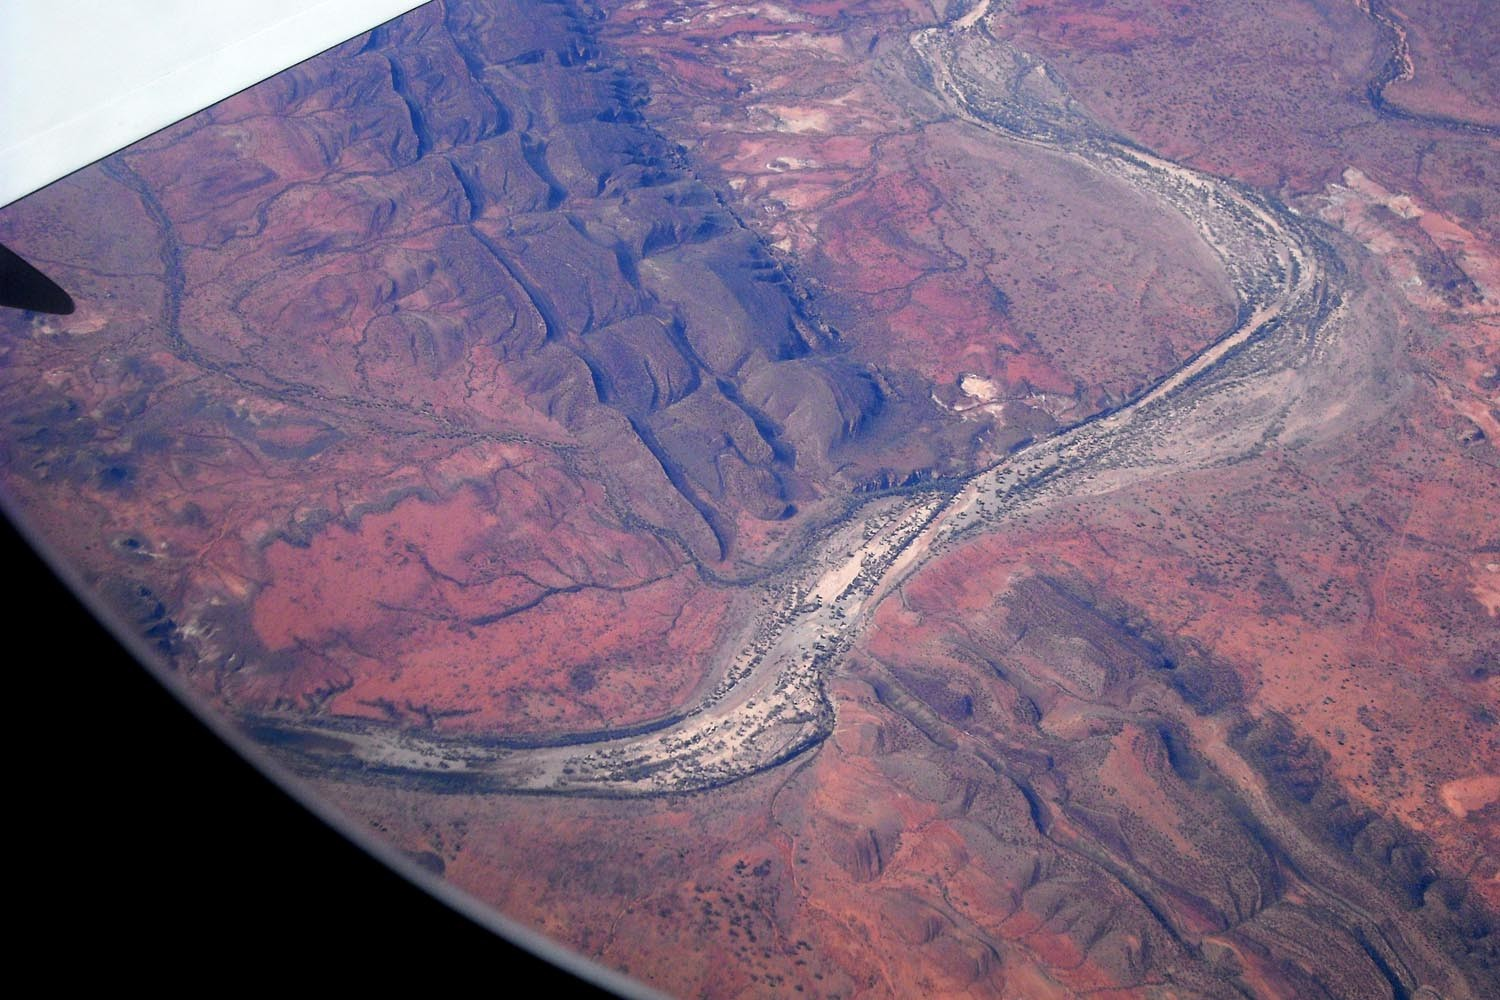 A river bed cutting through an ancient mountain range in Central Australia